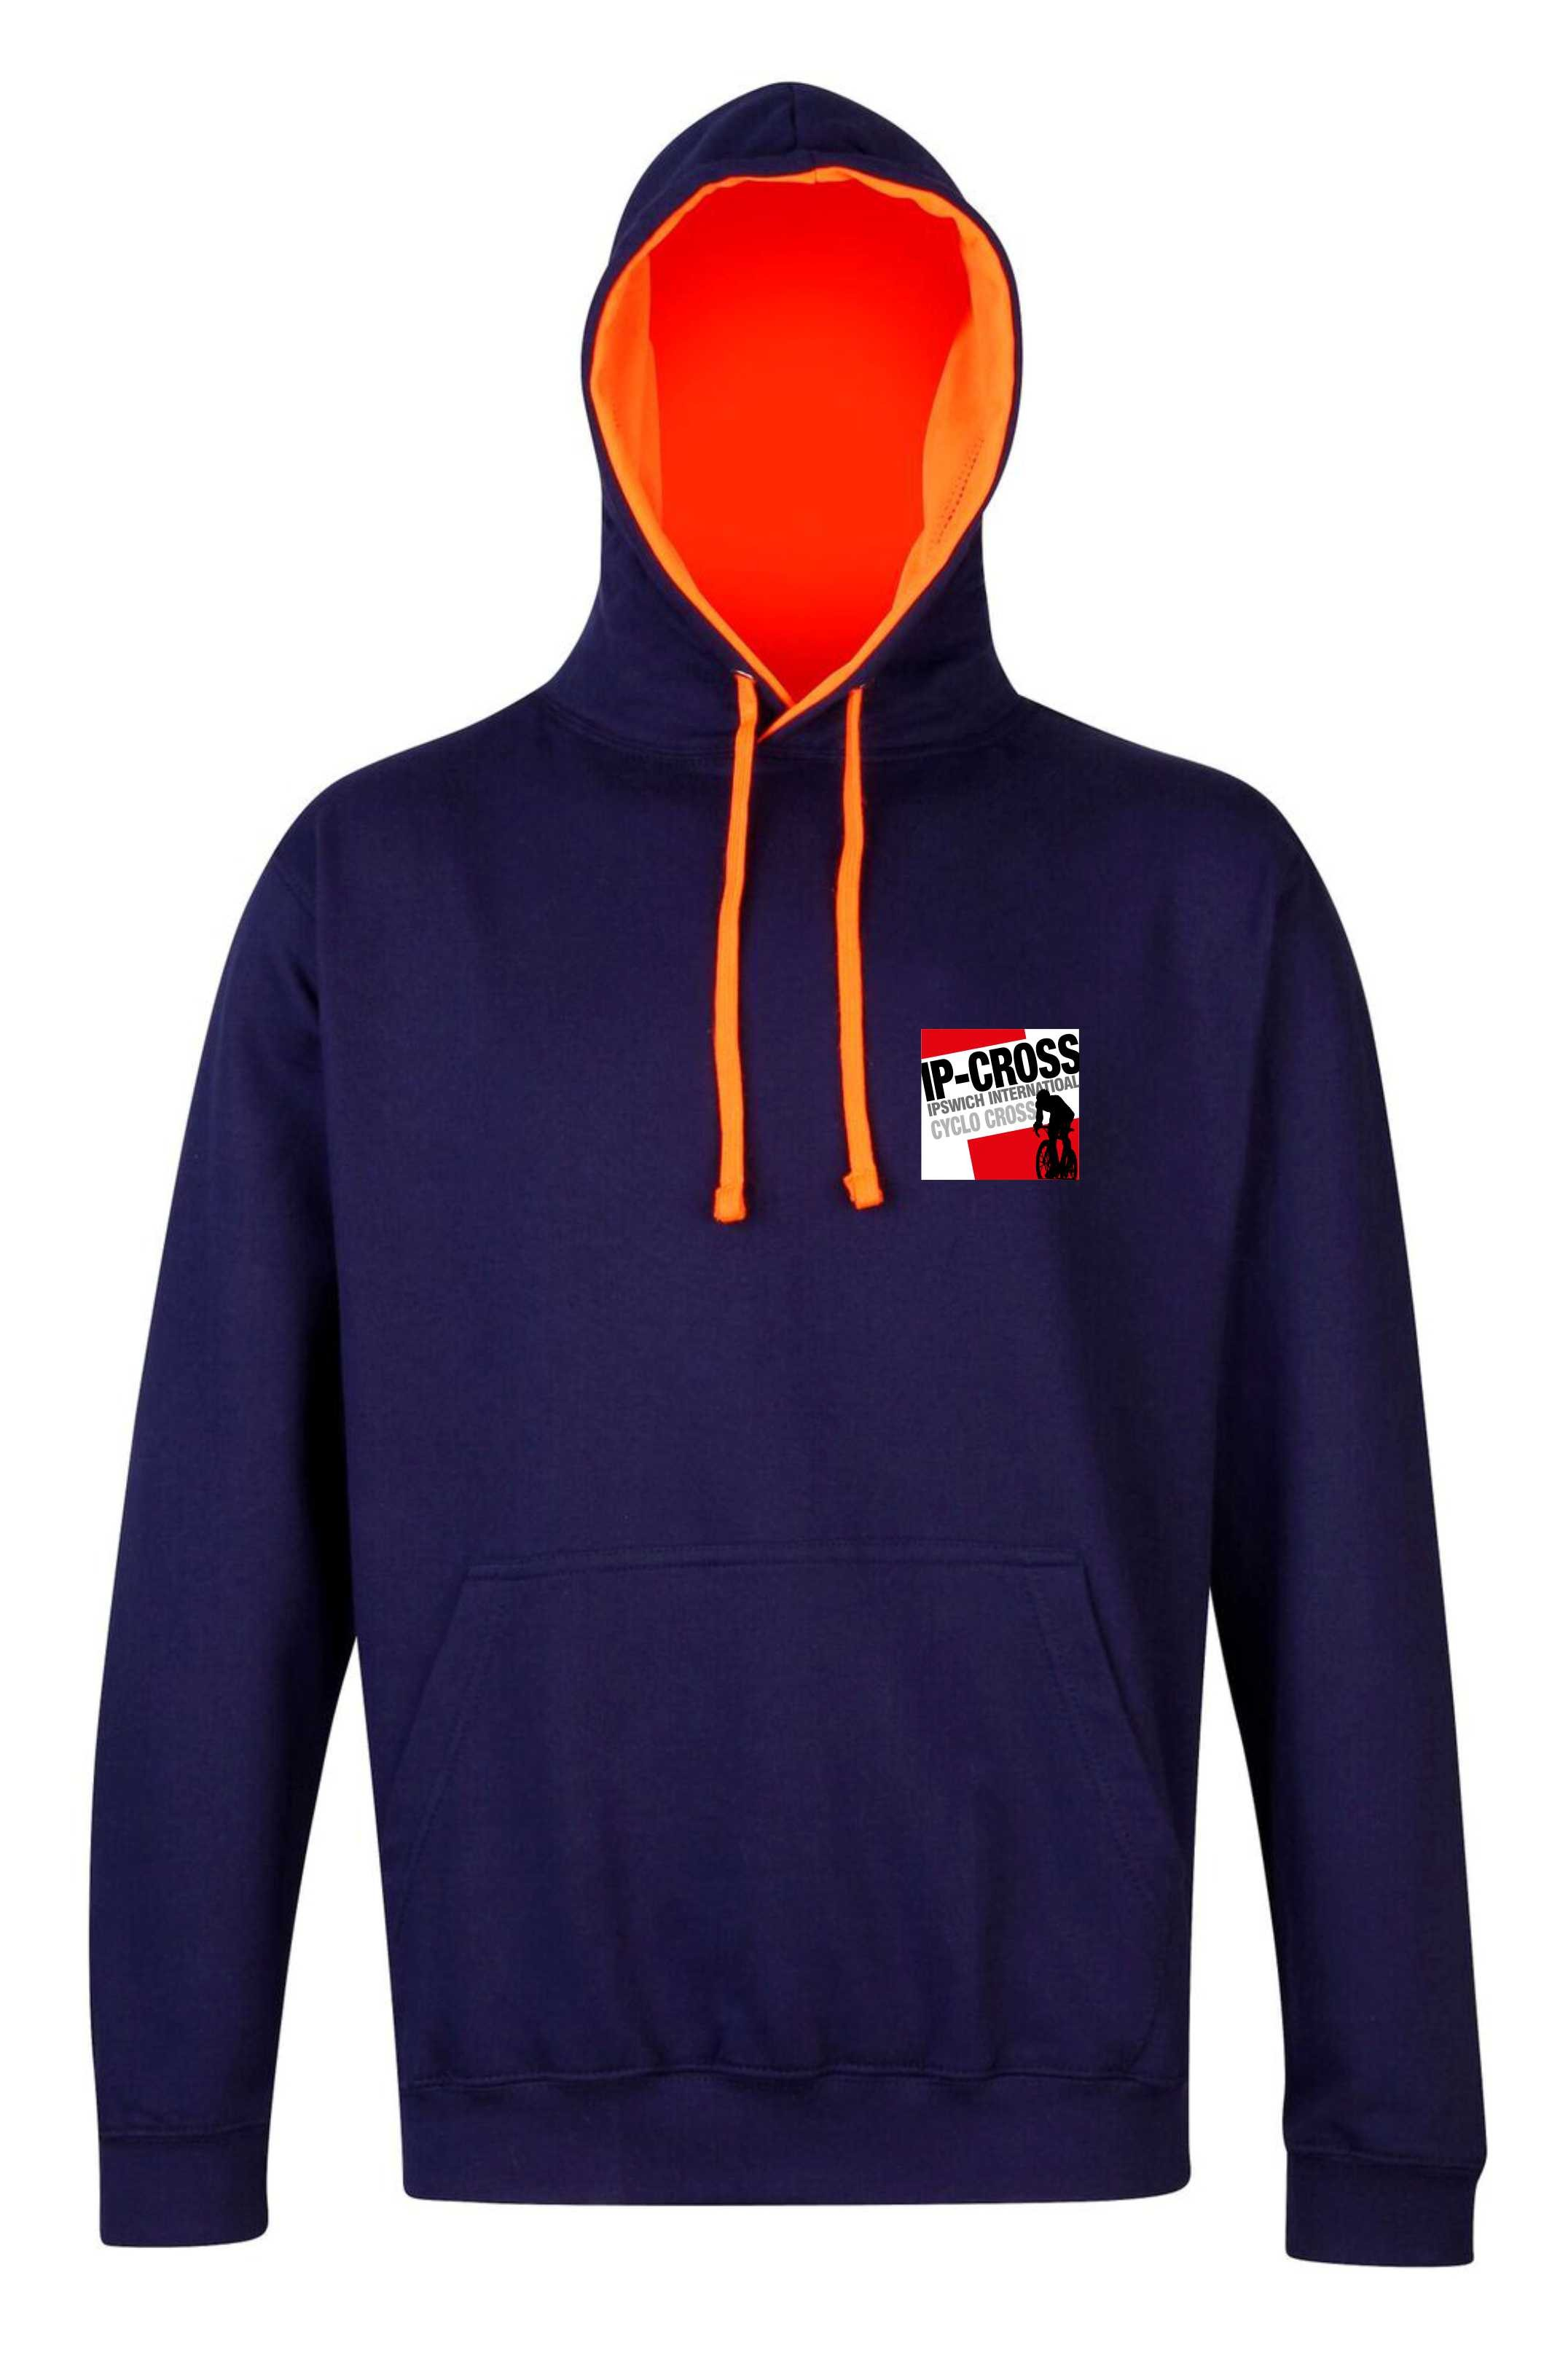 IP-Cross Unisex Superbright Contrast Pullover Hoodie - Oxford Navy and Electric Orange